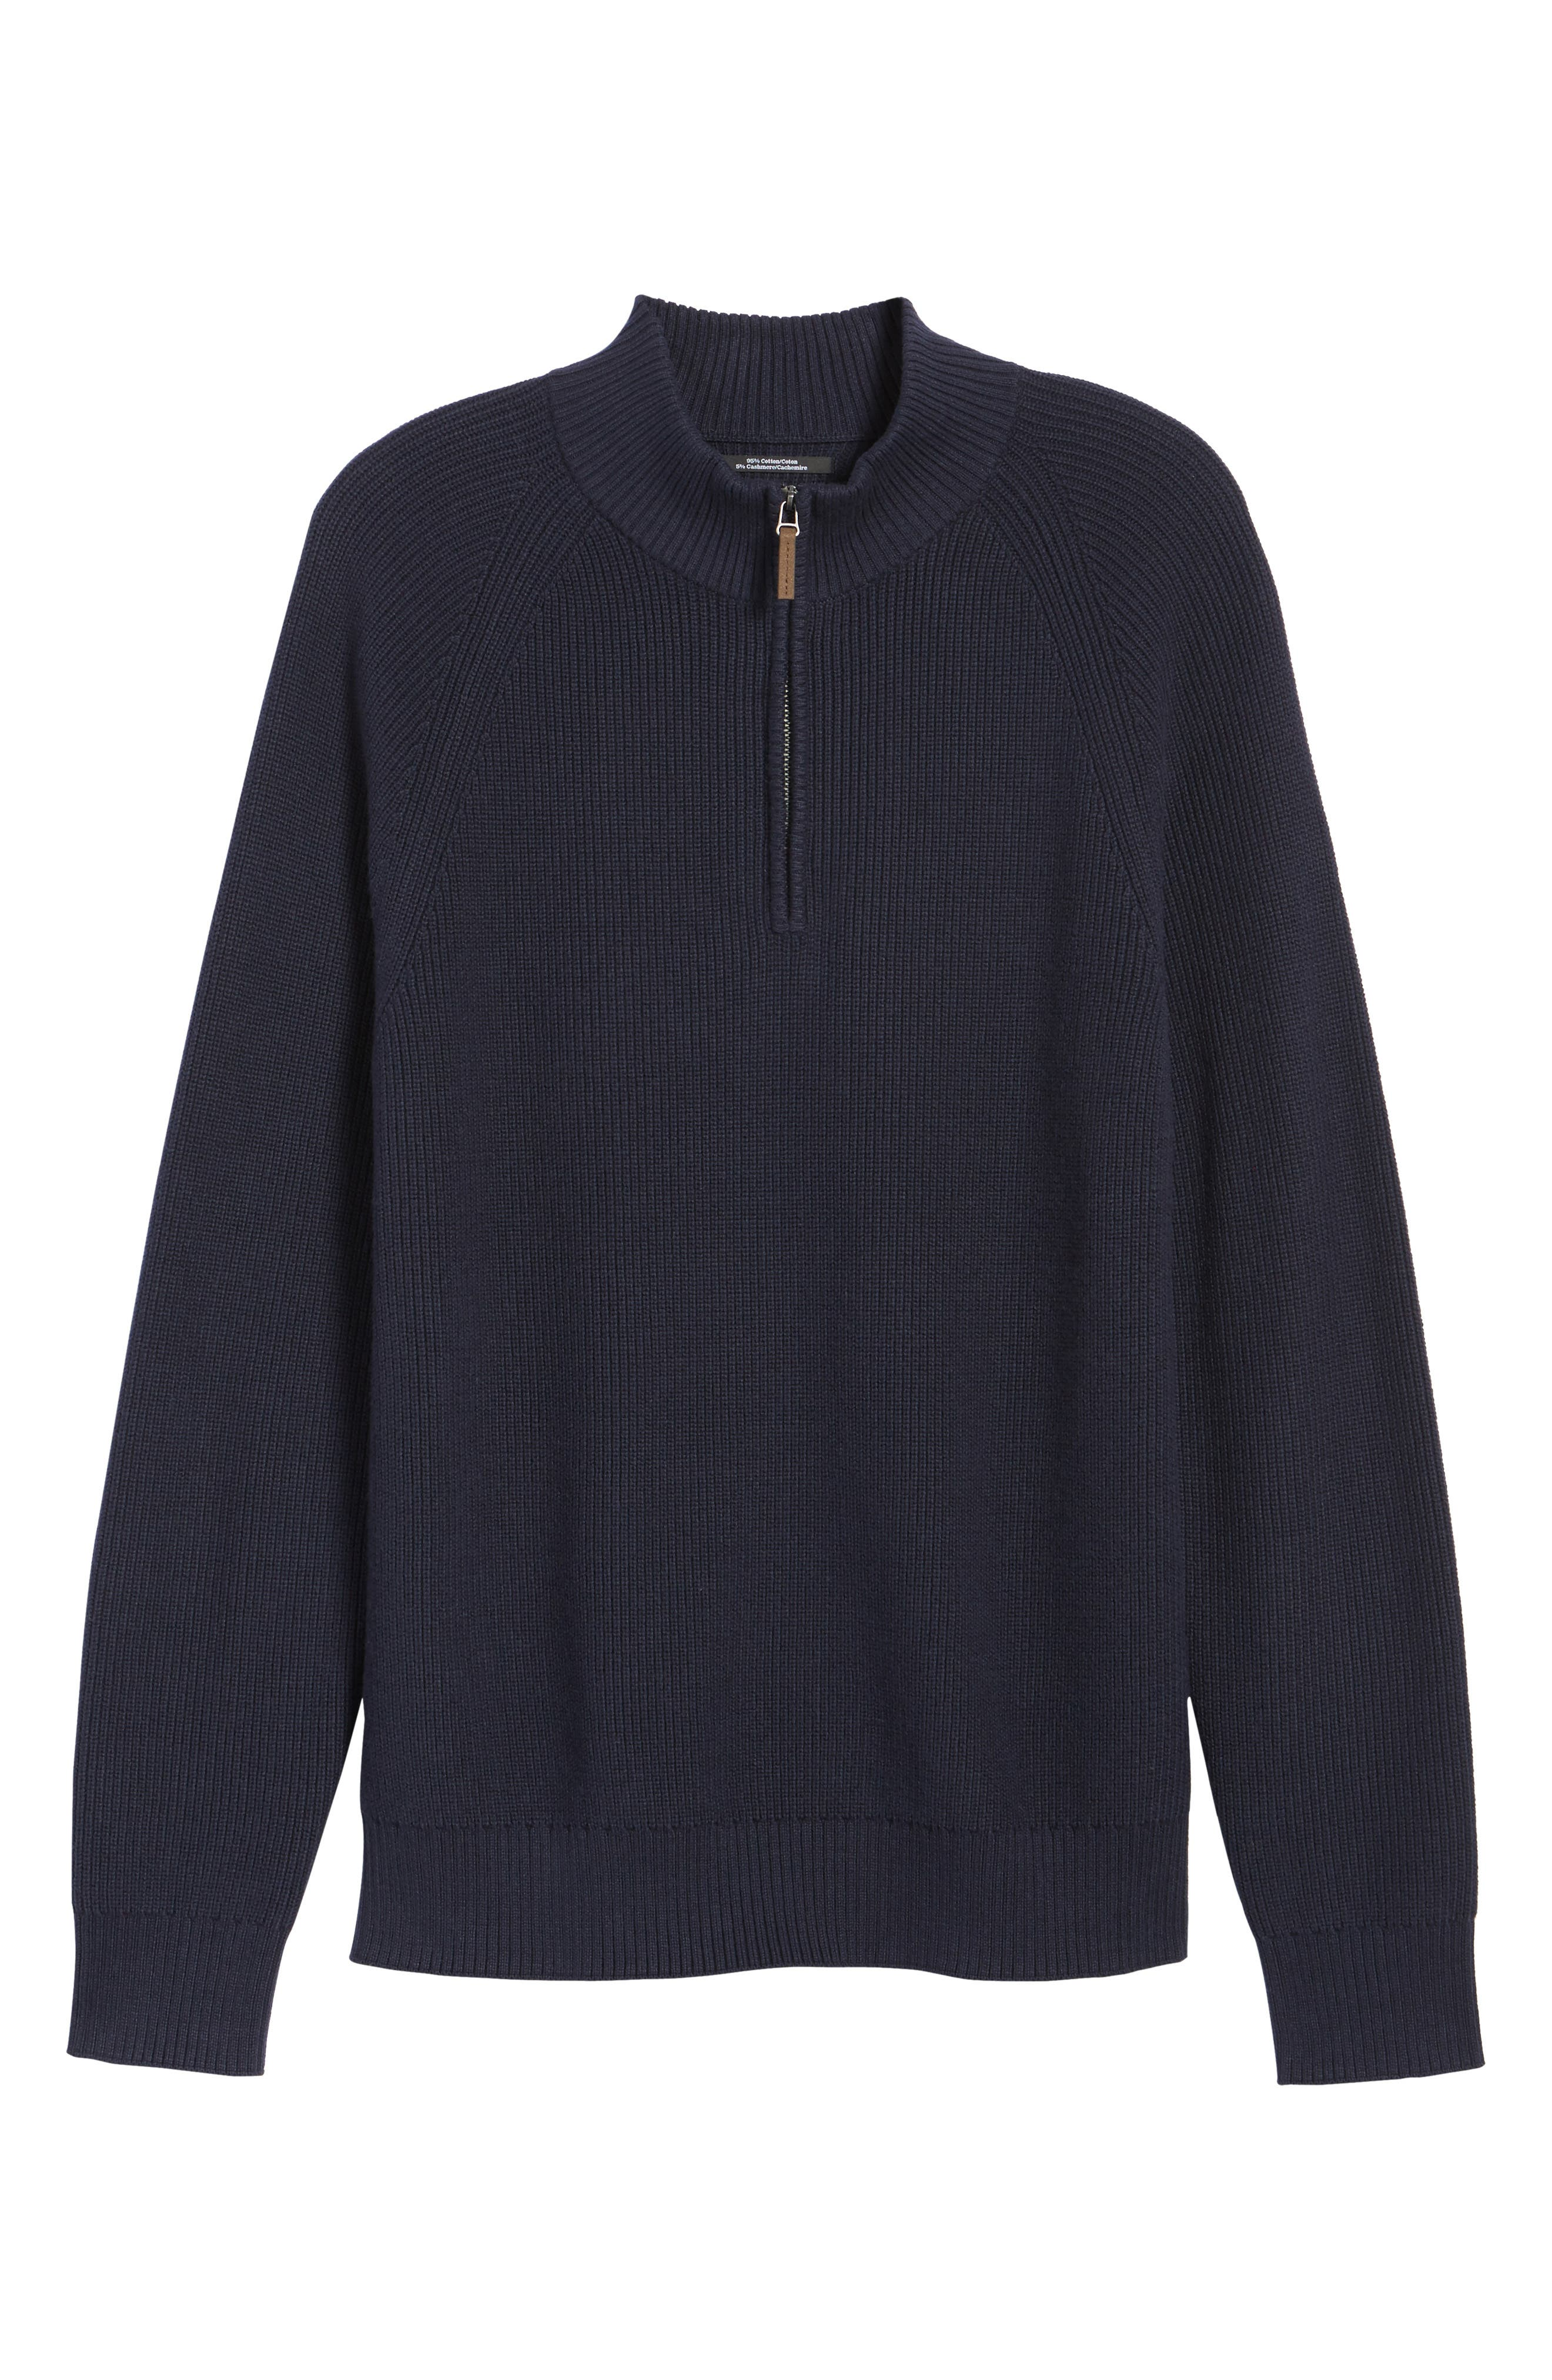 Ribbed Quarter Zip Sweater,                             Alternate thumbnail 6, color,                             Navy Night